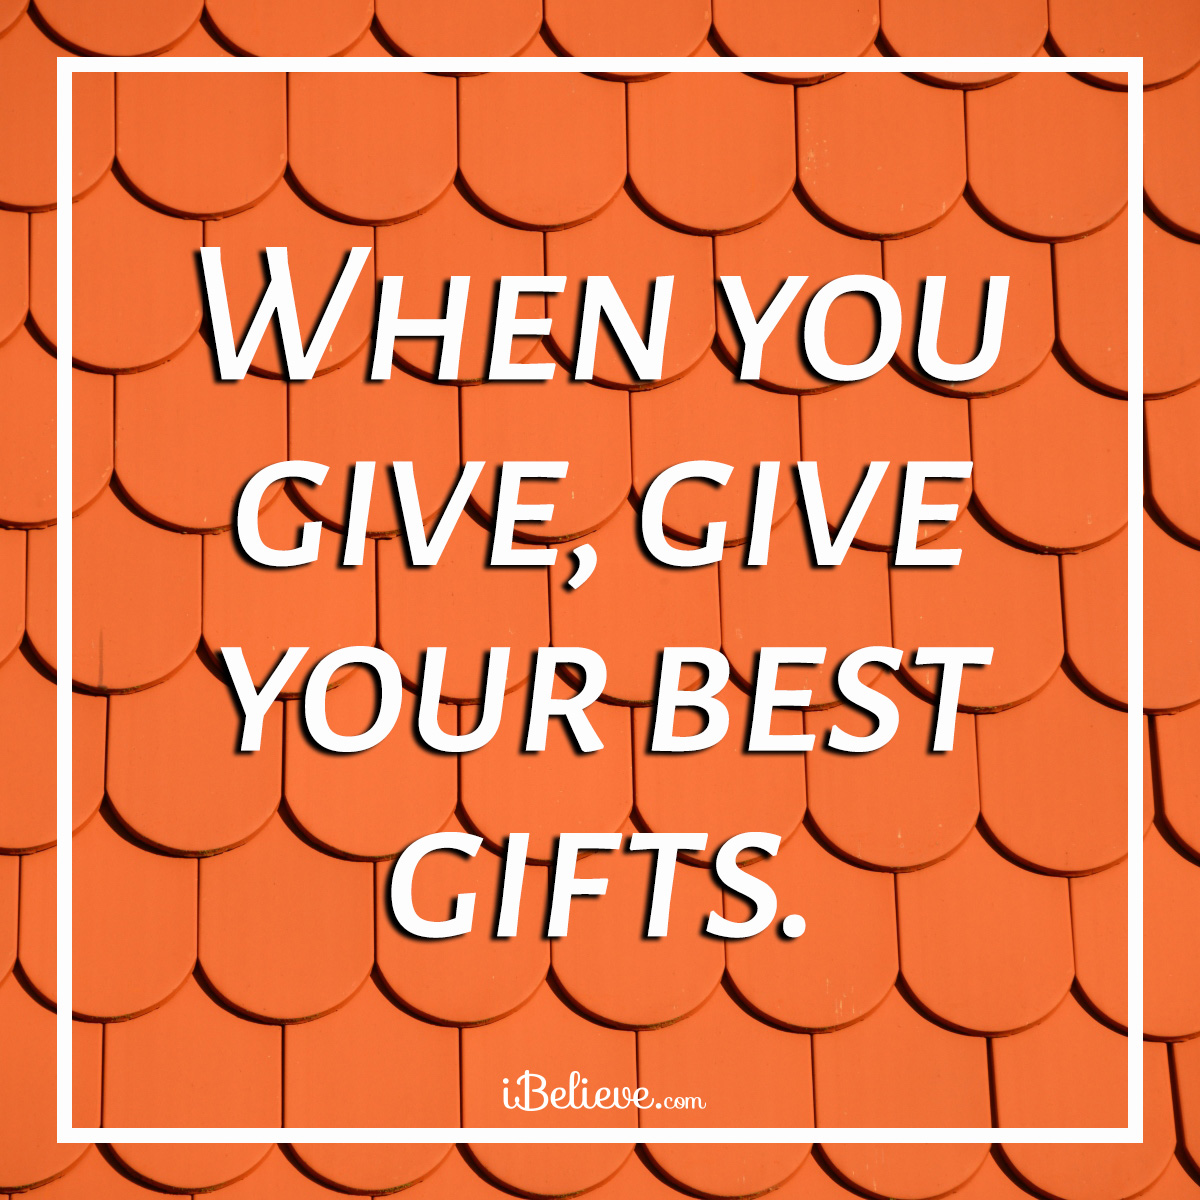 Give your best gifts